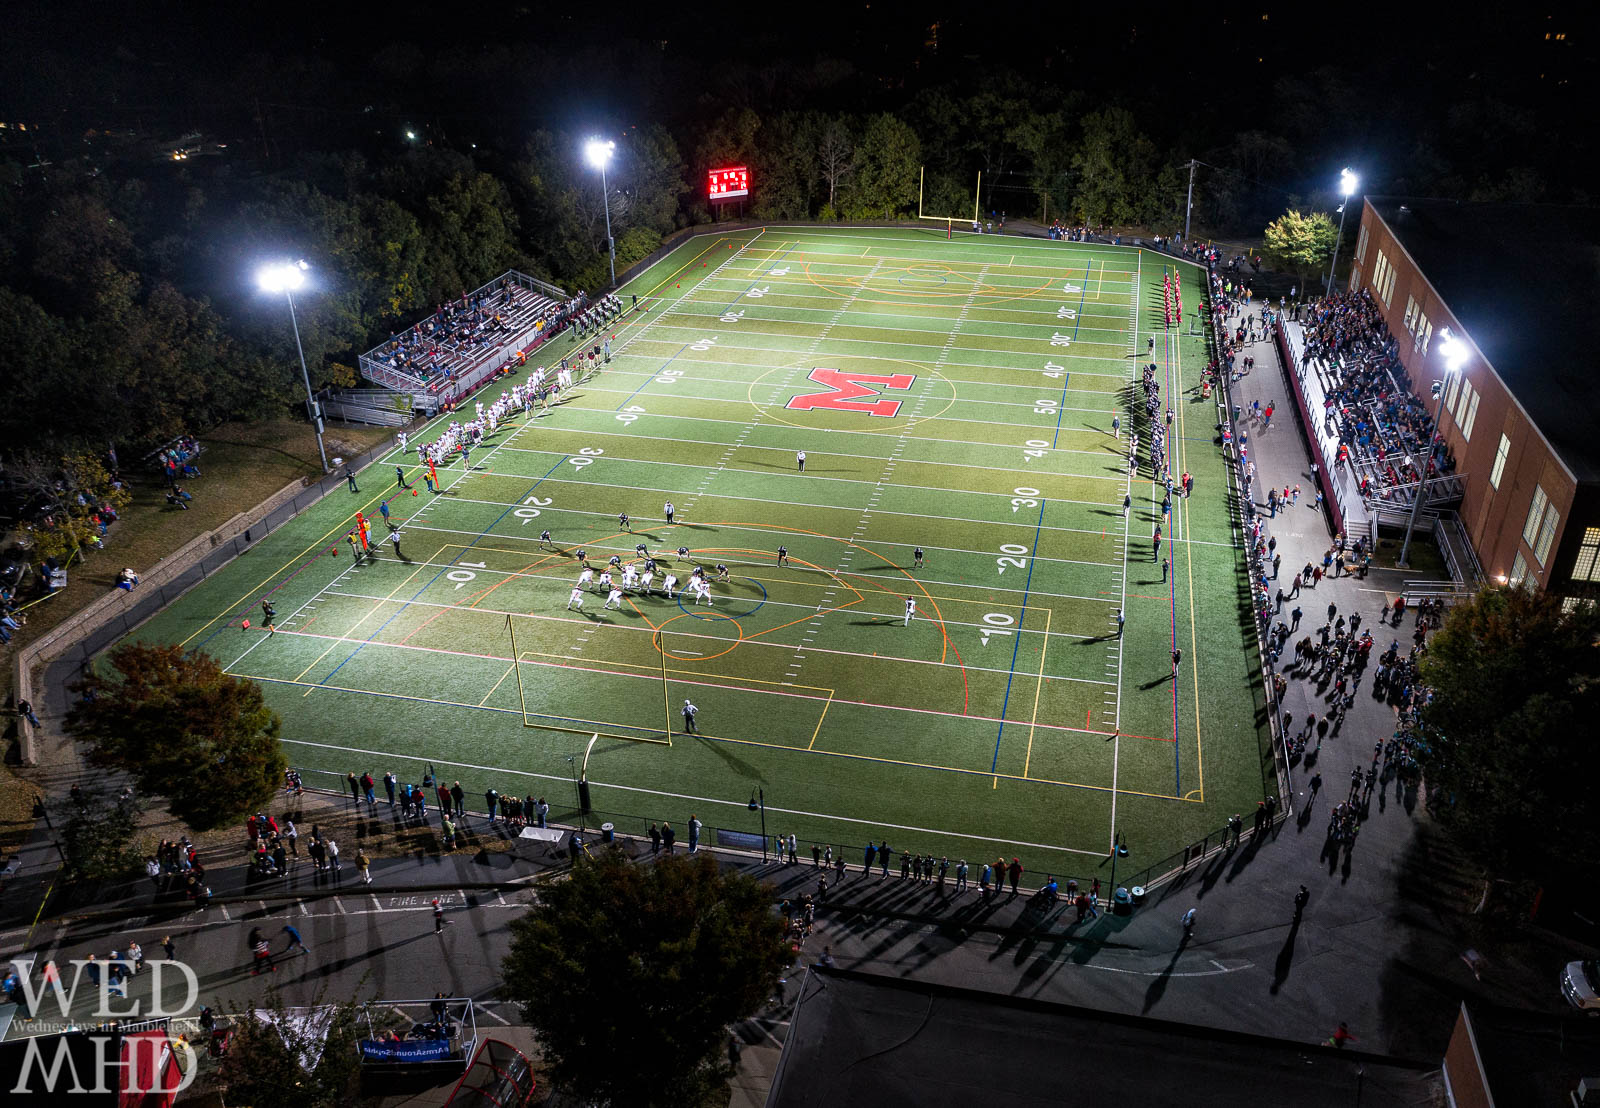 Friday night lights shine over the Marblehead High School football team as they play a home game against Gloucester. The Marblehead Magicians went on to win and maintain an undefeated season.